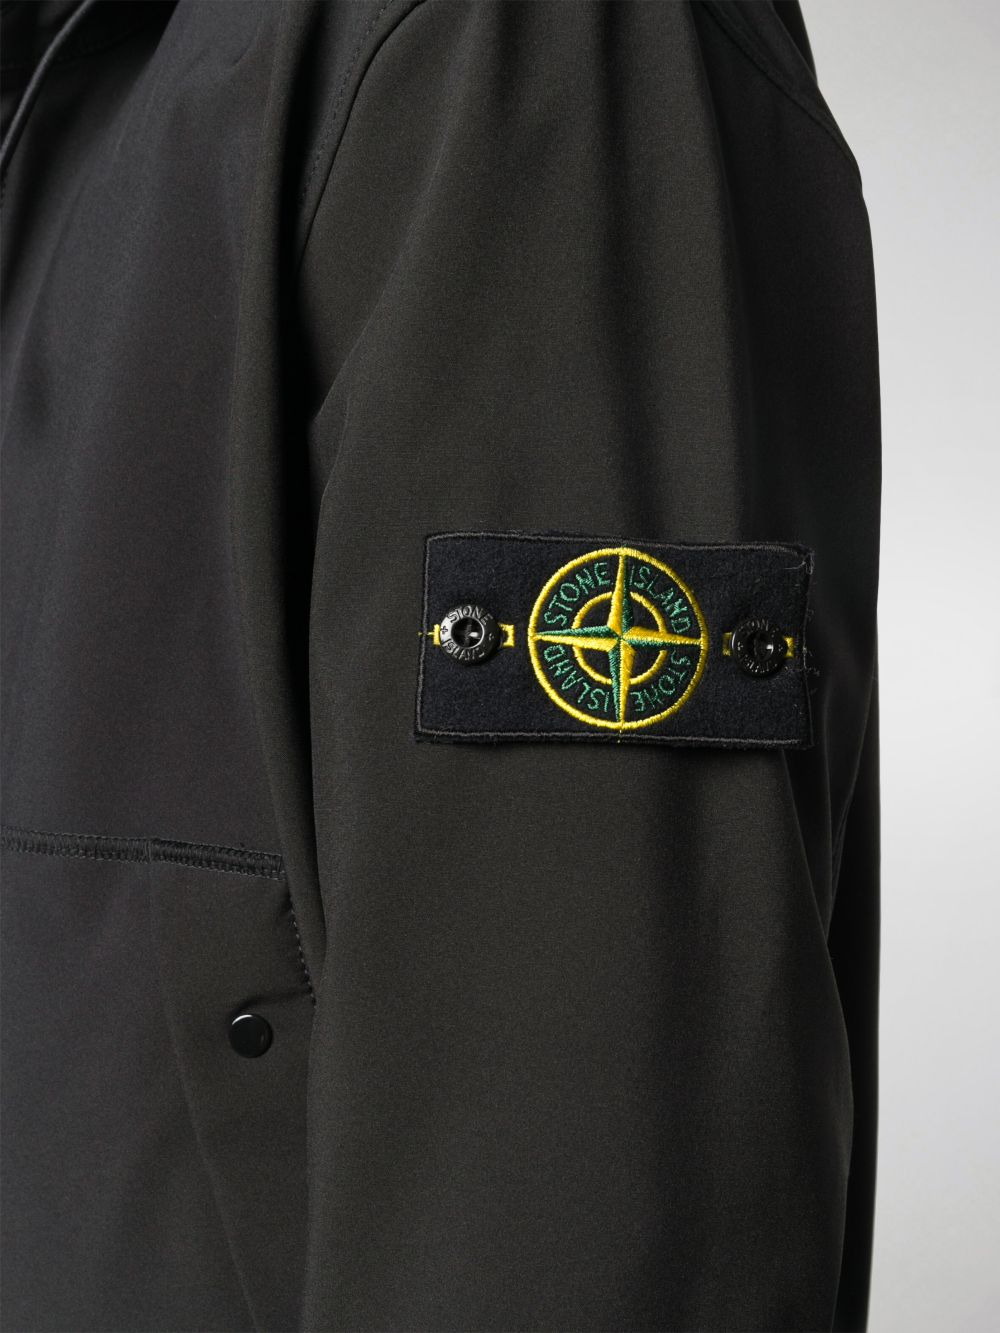 Black hooded jacket from featuring Stone Island compass logo patch at the sleeve STONE ISLAND      7315Q0122V0029